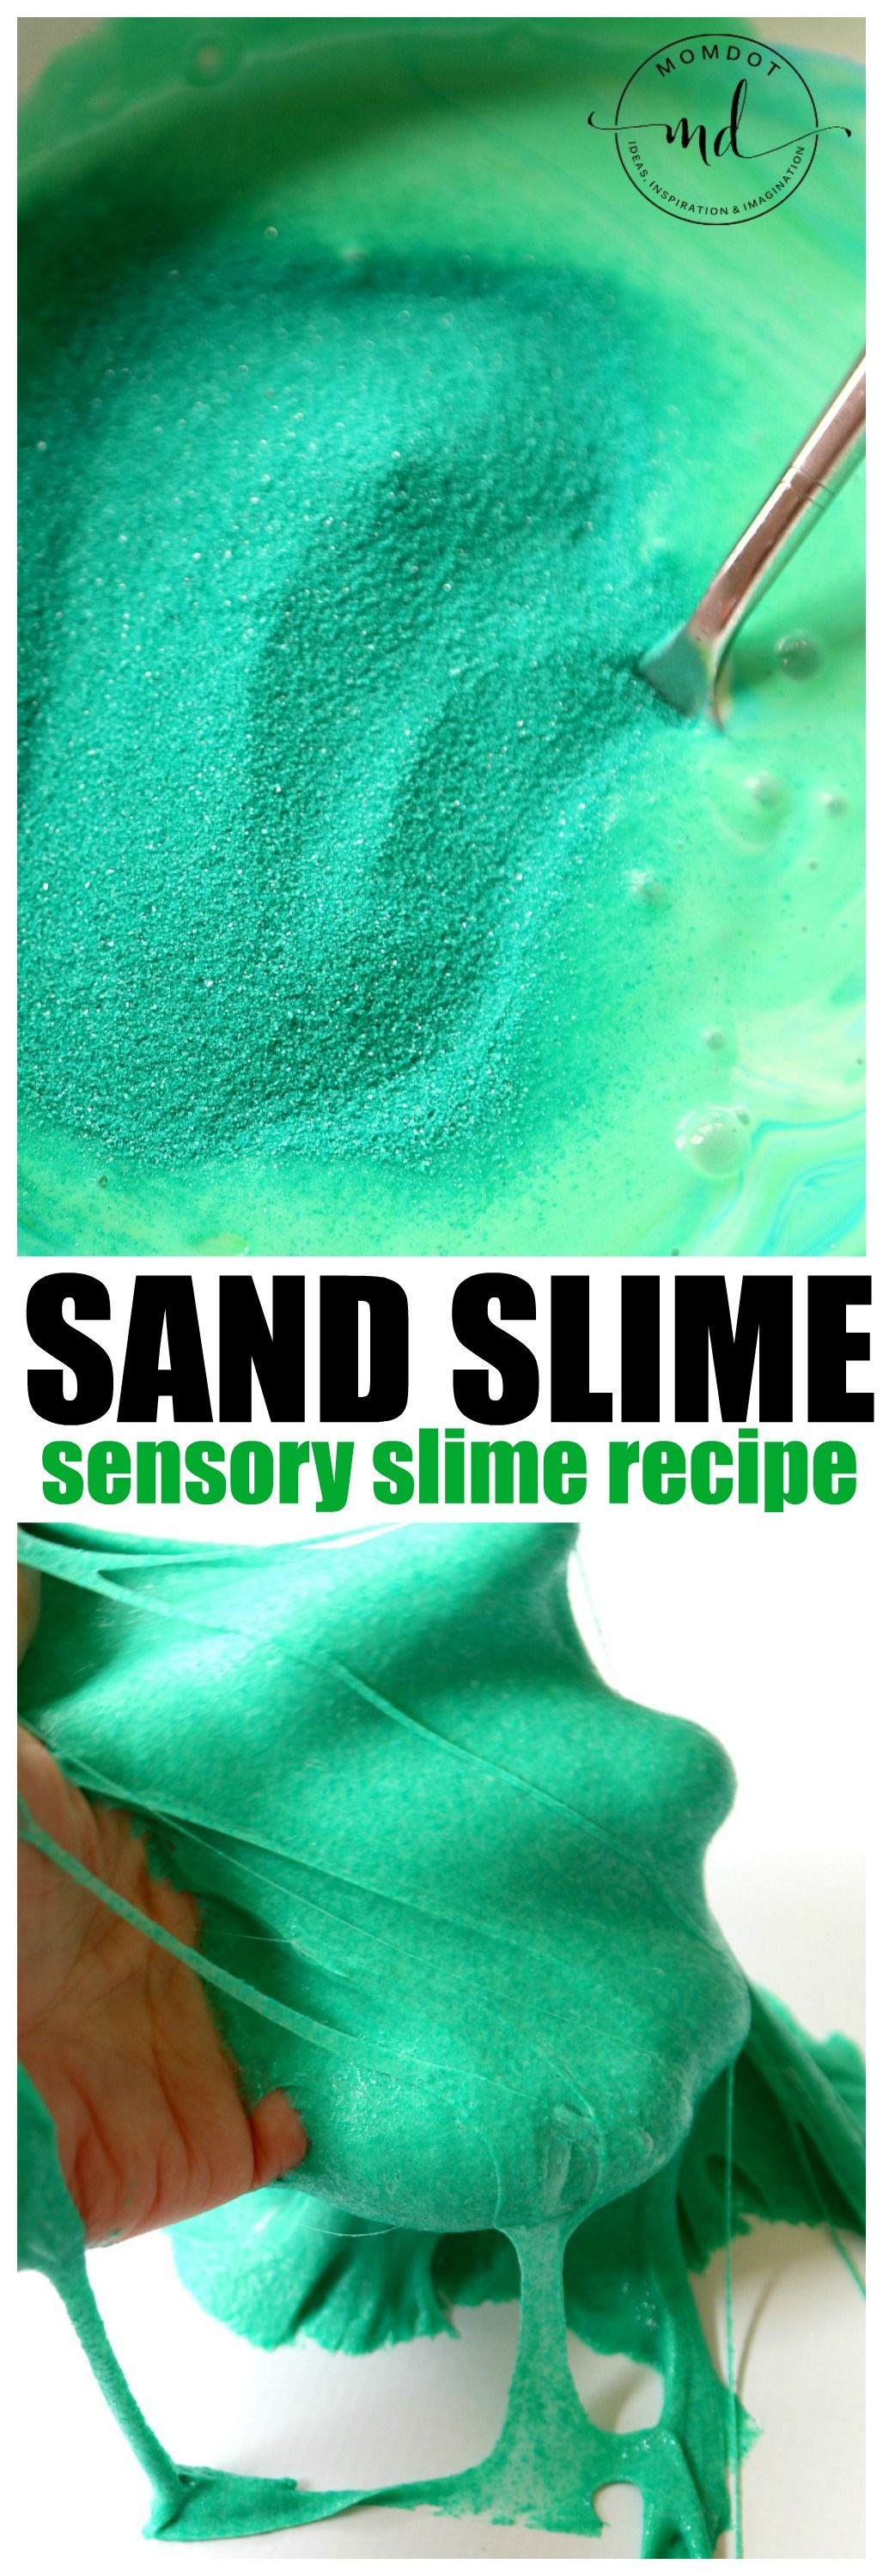 Sand Slime DIY Sand Slime for